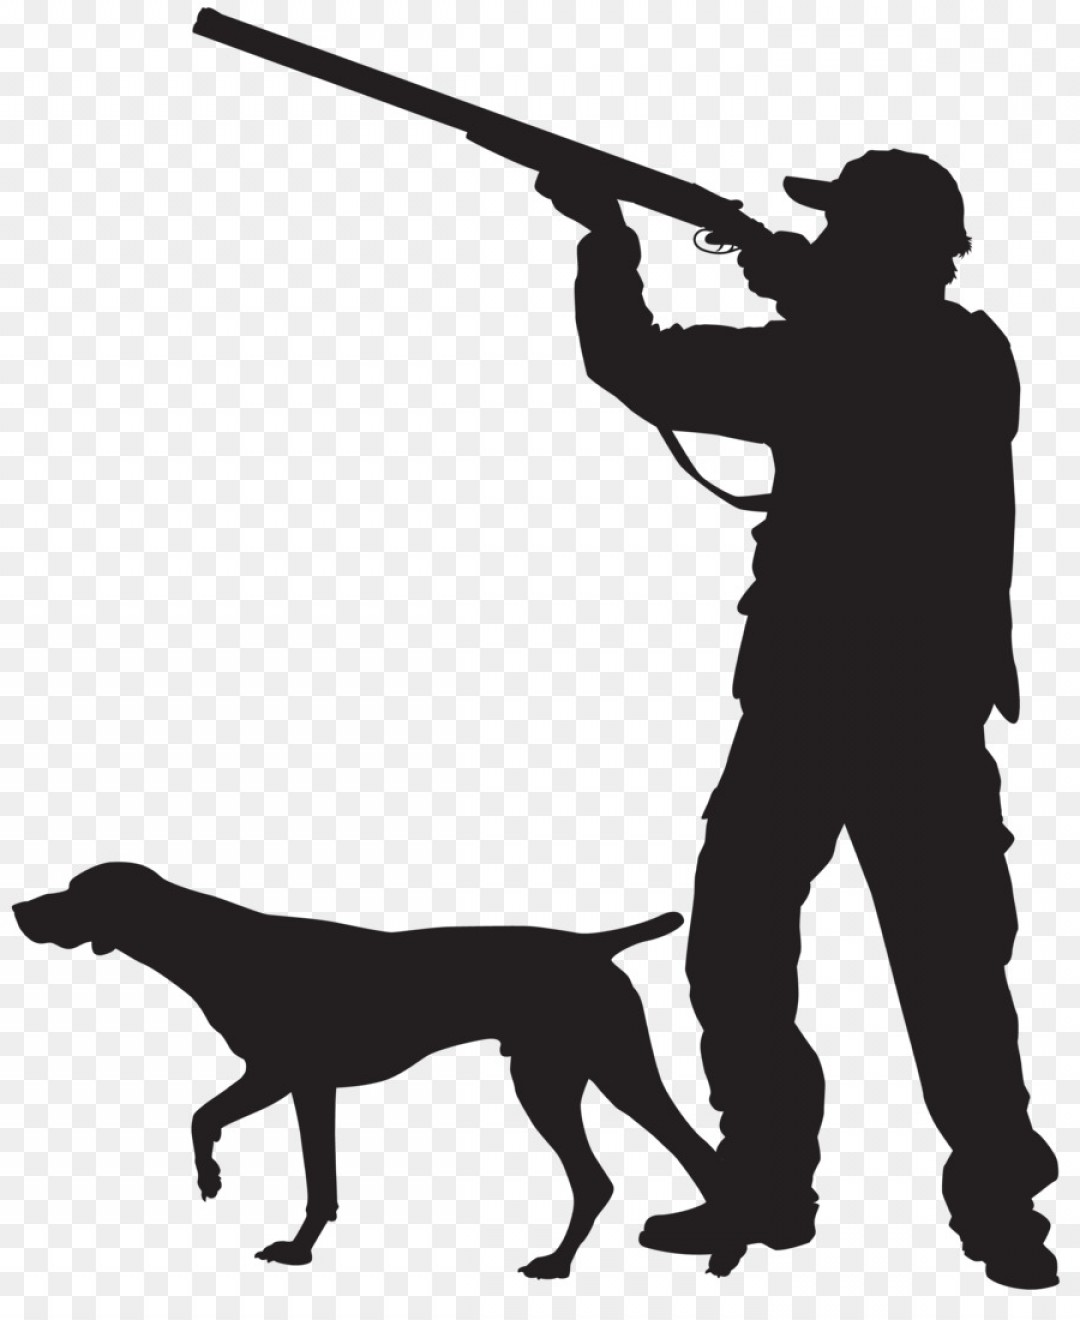 Png Hunting Dog Waterfowl Hunting Clip Art Flying Dogs.